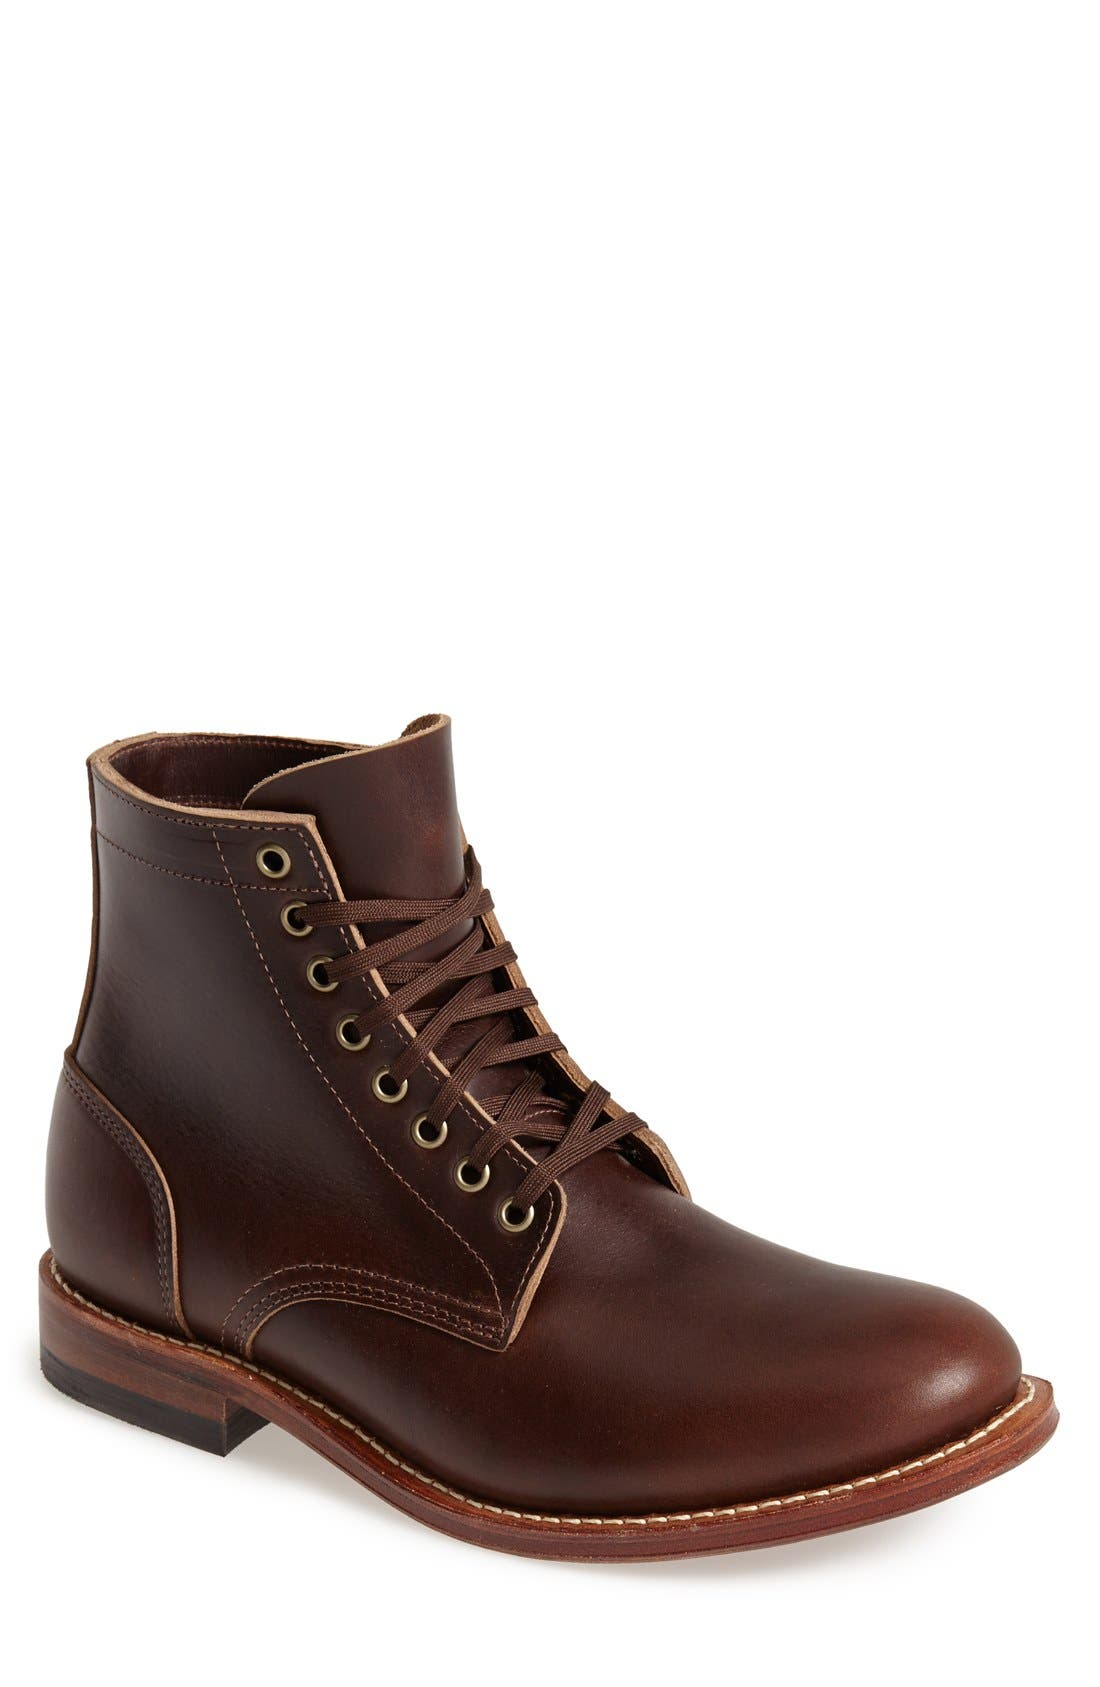 OAK STREET BOOTMAKERS Plain Toe Trench Boot in Brown